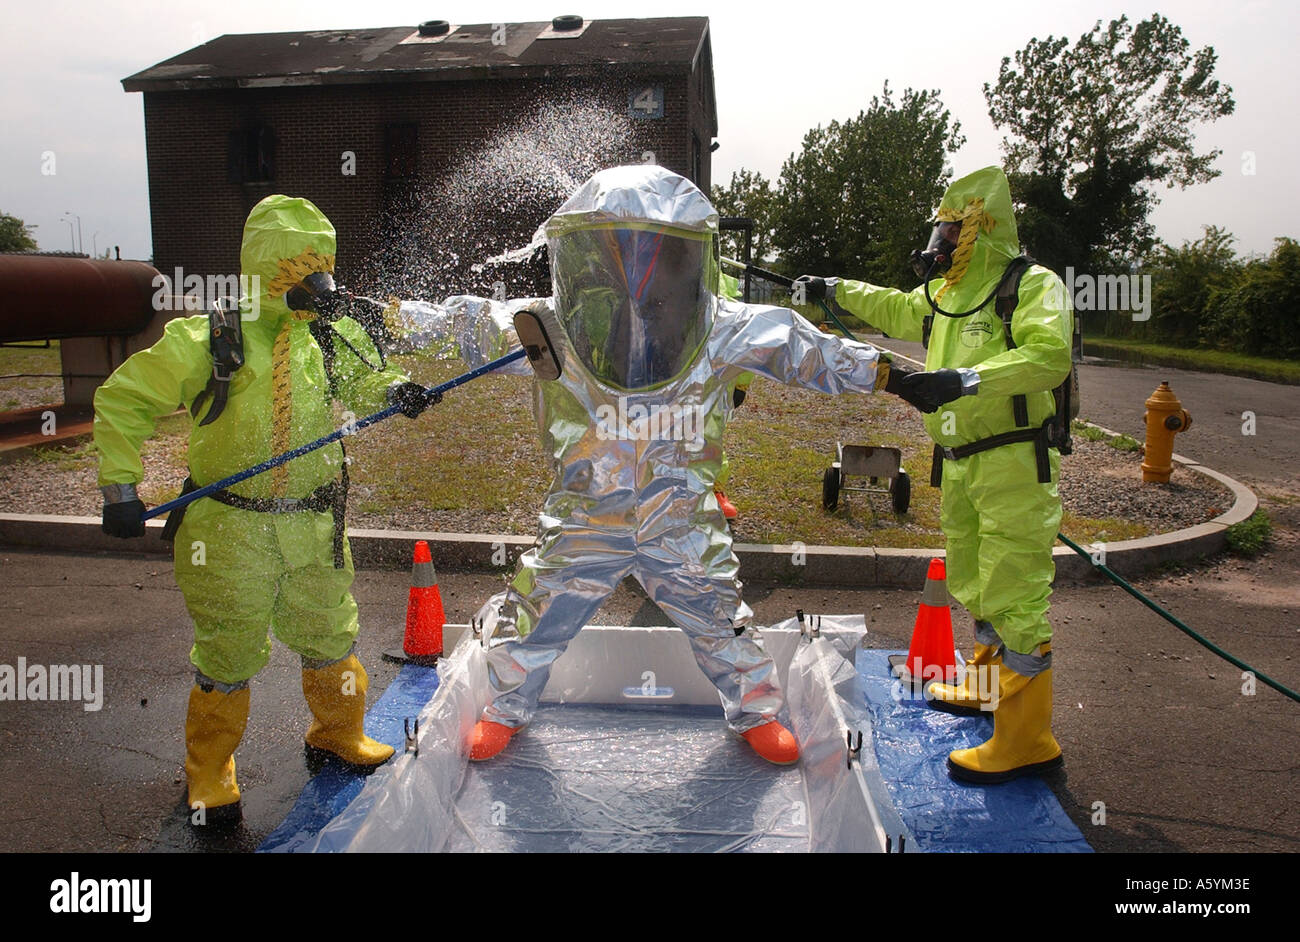 Emergency workers cleaning each other off in chemical suits after bio hazard training drill - Stock Image